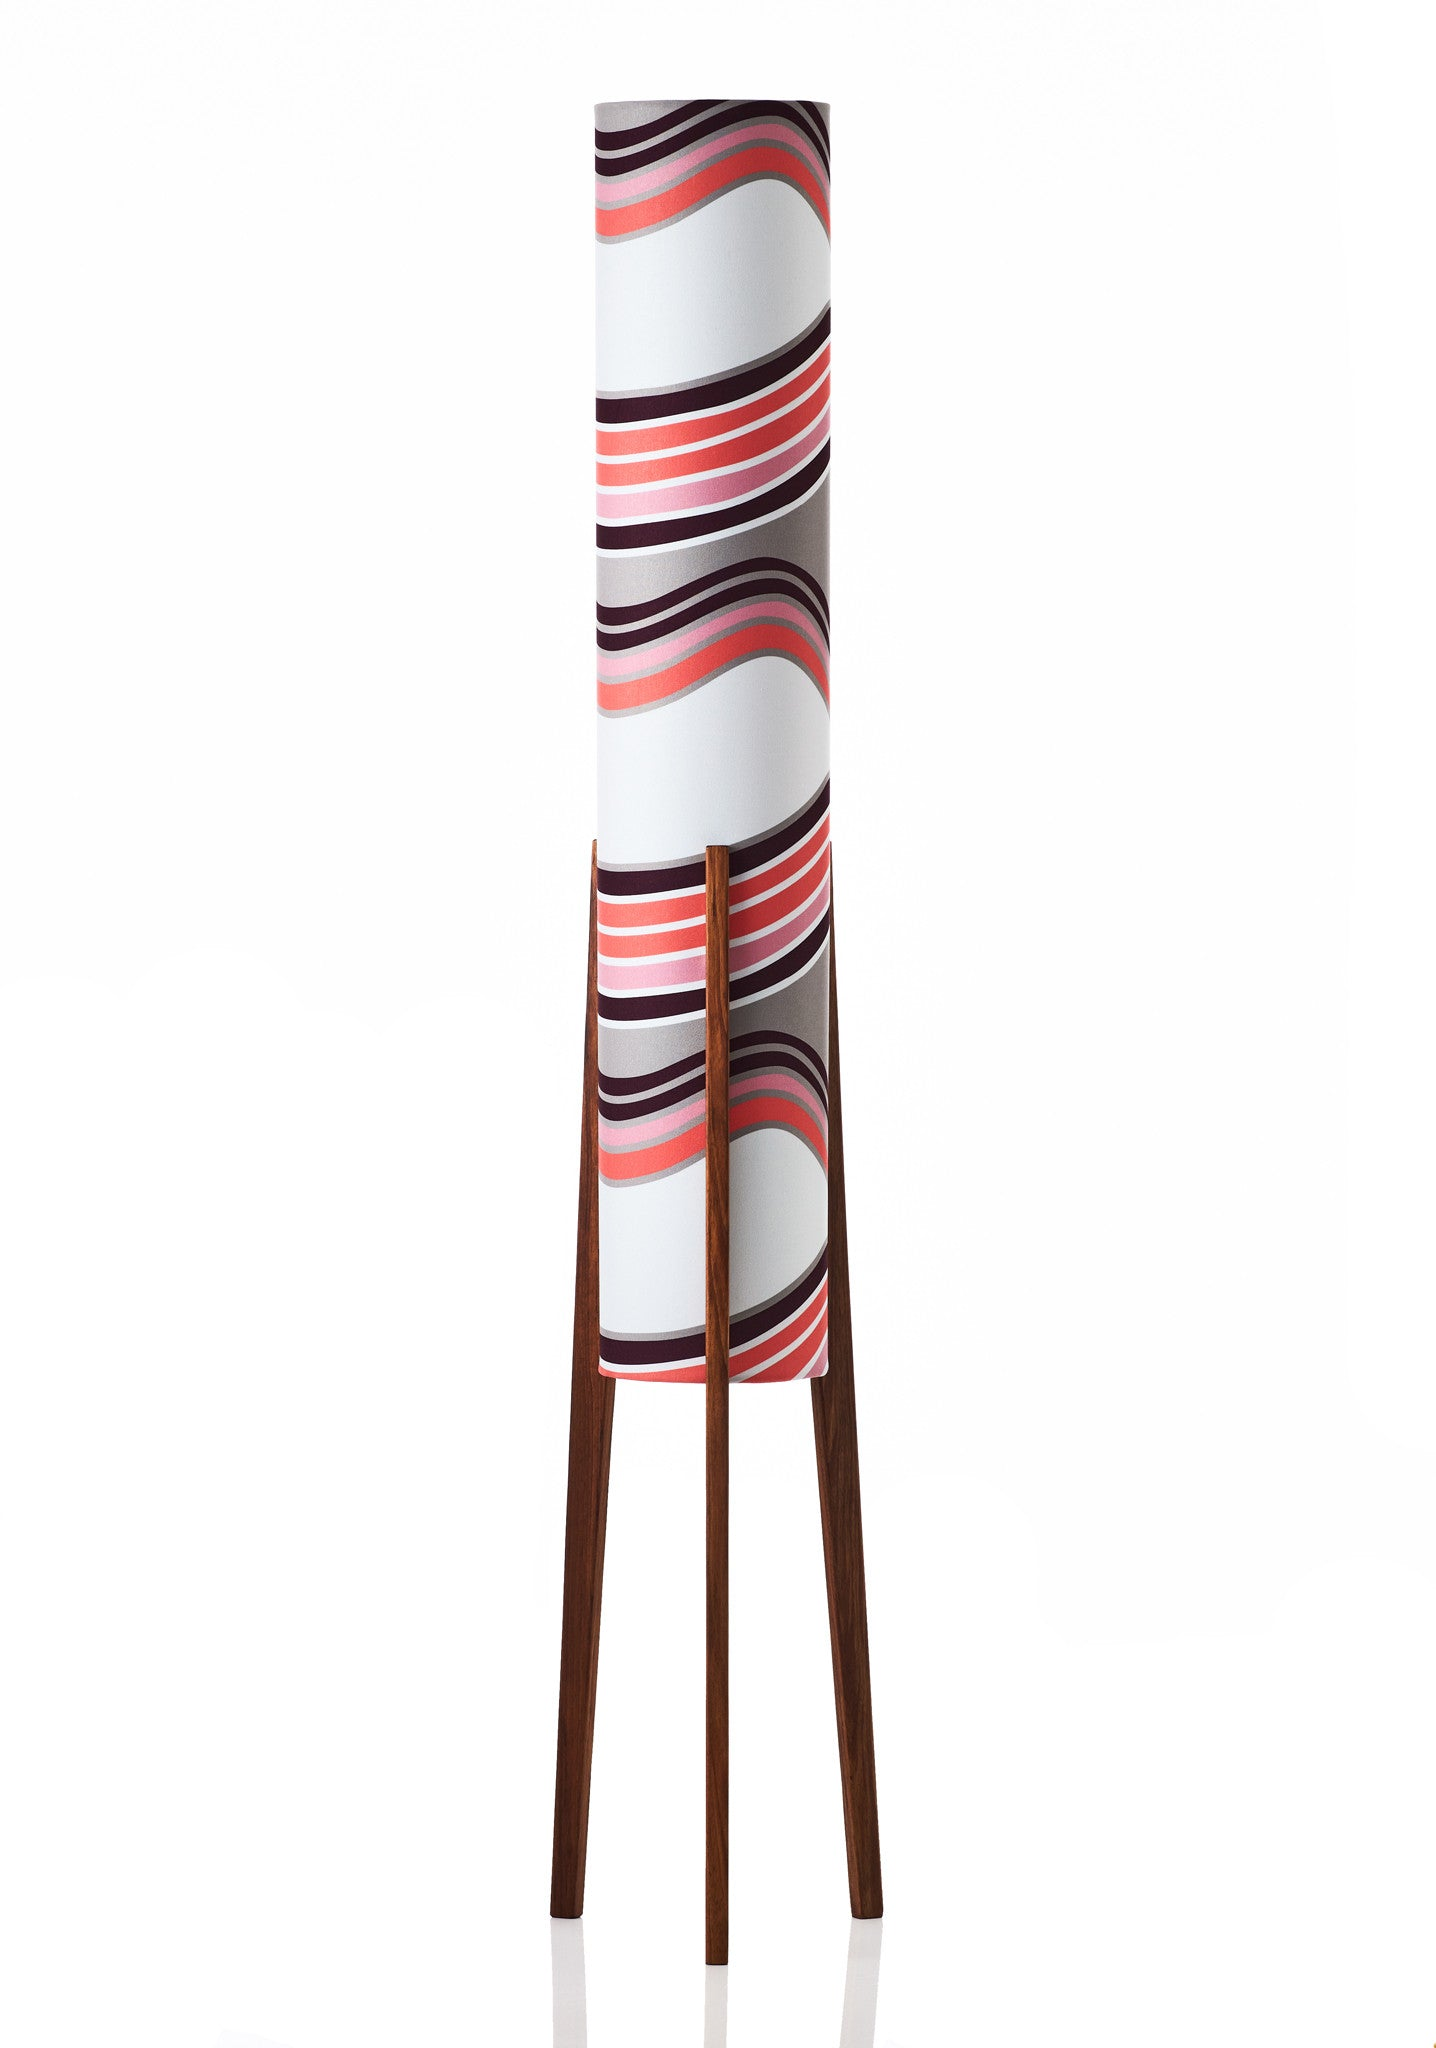 Rocket Floor Lamp Large - Laava Dusk